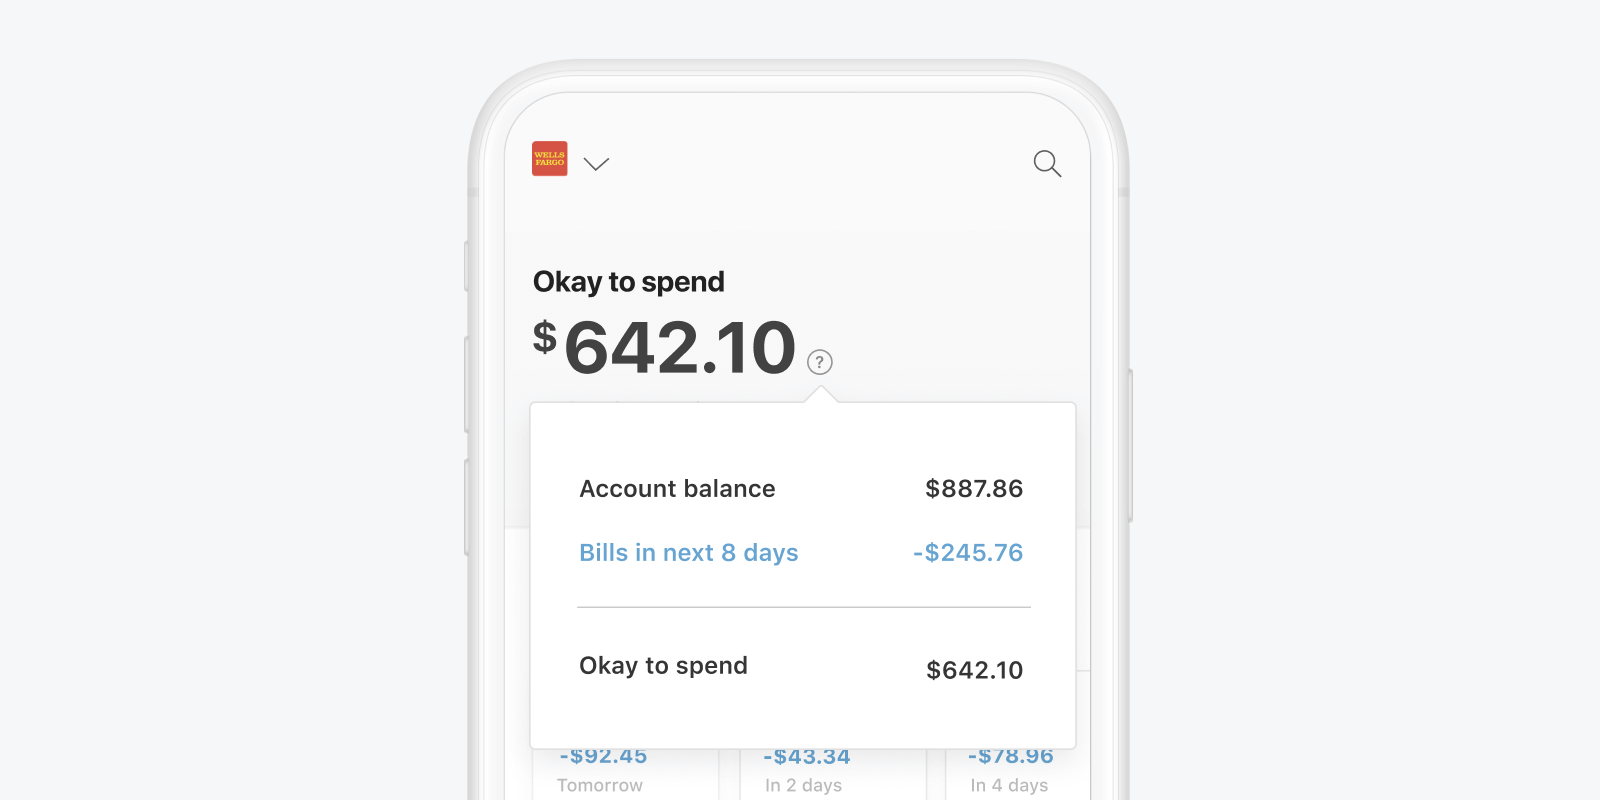 """The Even app's """"Okay to spend"""" screen, showing the user's bank account balance of $887.86, upcoming bills amounting to $245.76, and an """"okay to spend"""" amount of $642.10"""